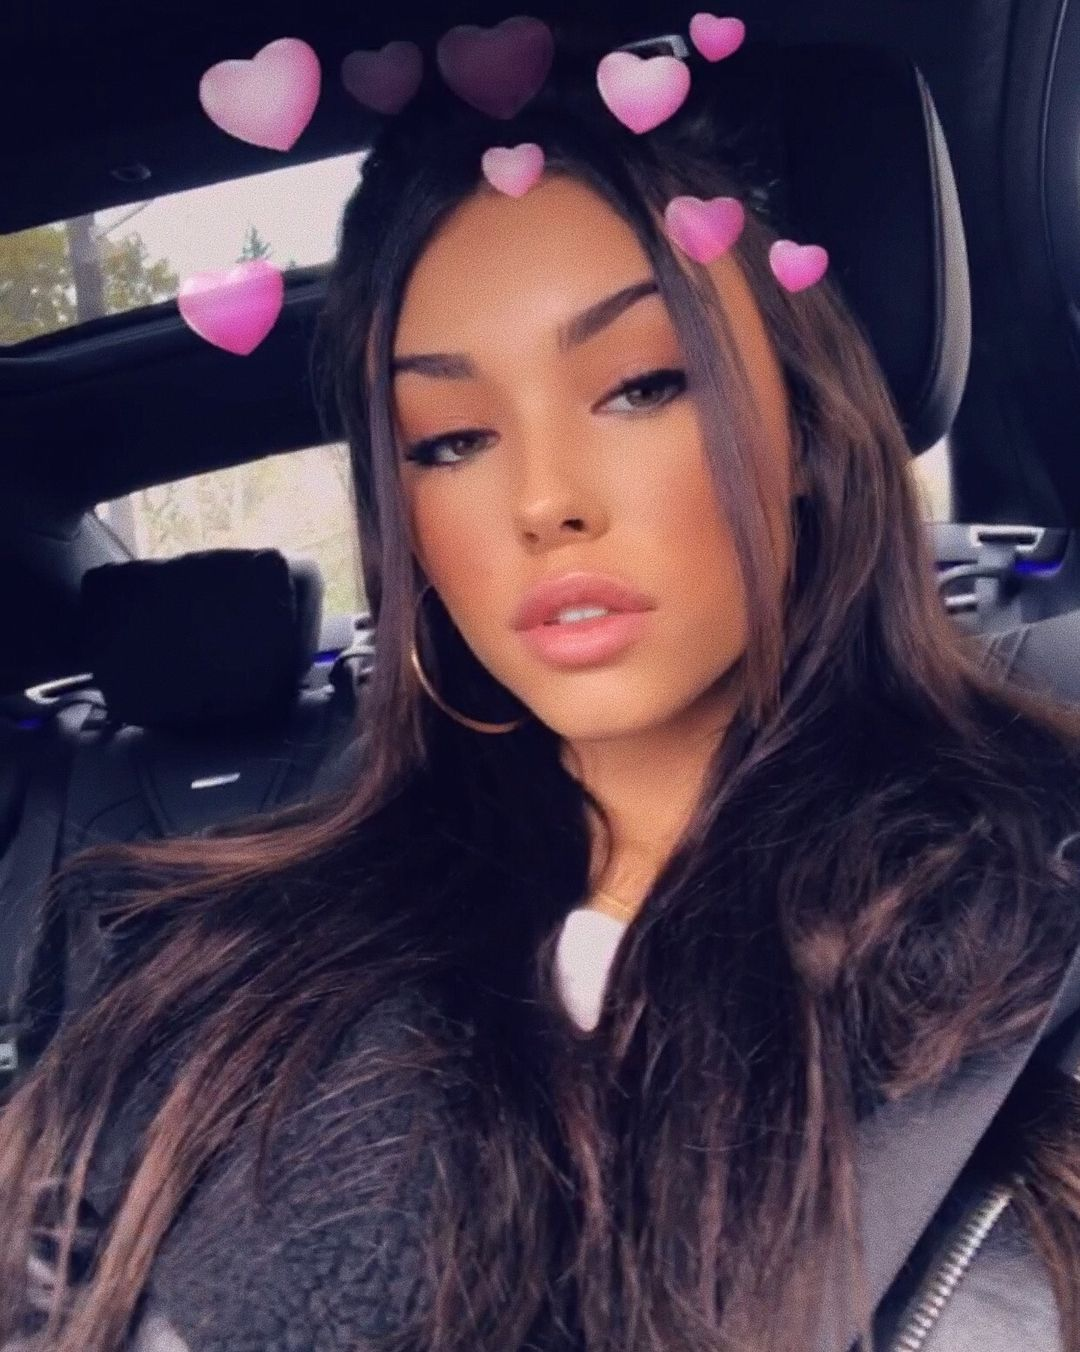 Madison beer the most beautiful girl I have ever seen ...